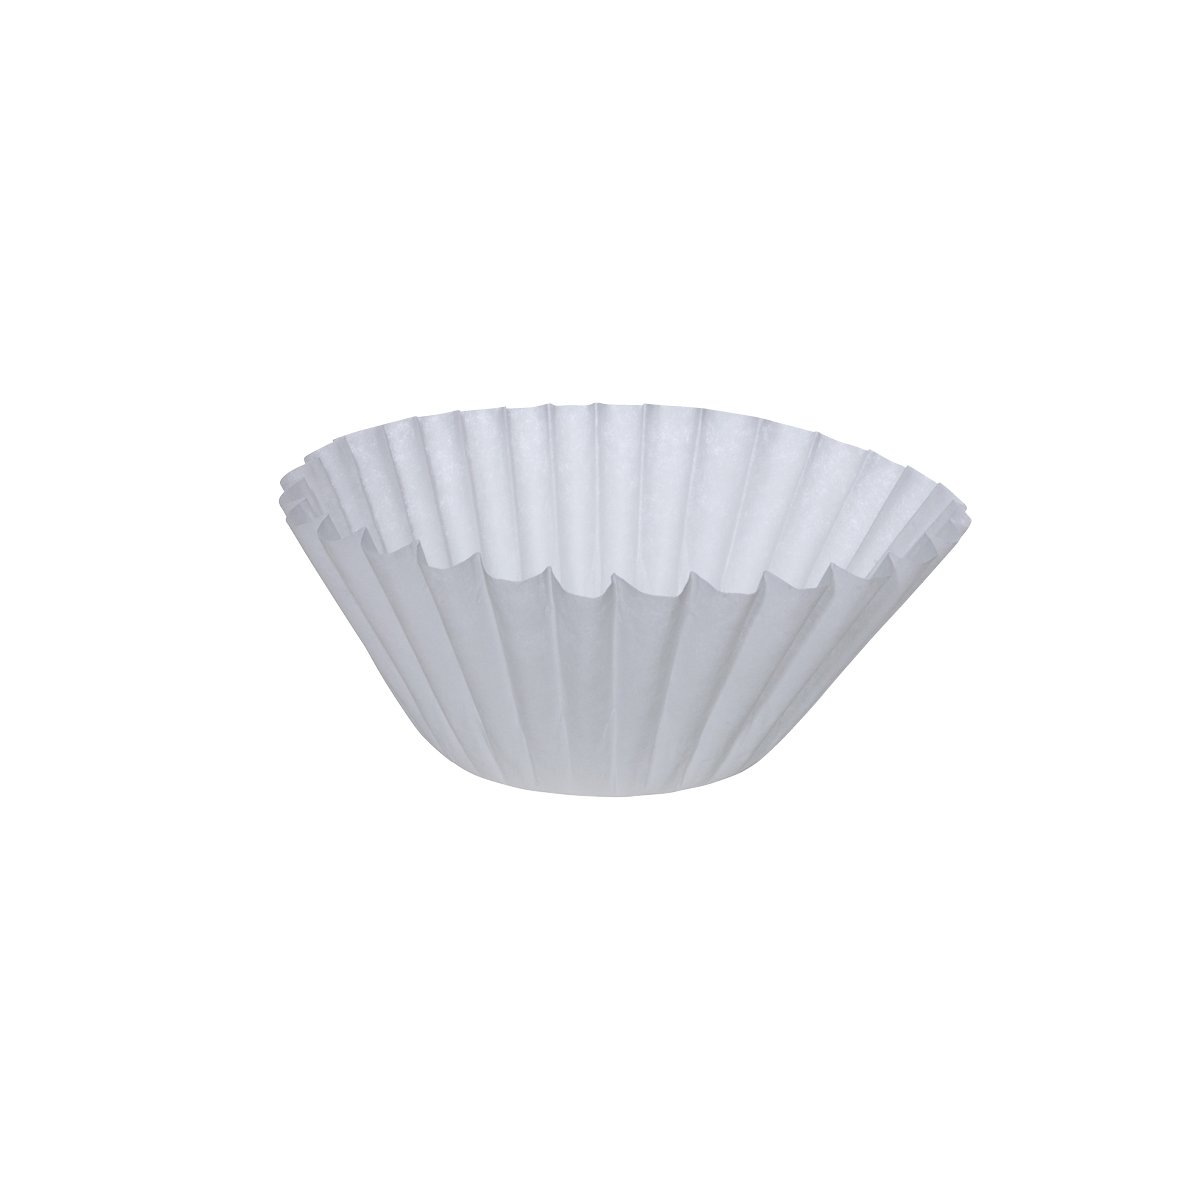 Wilbur Curtis Paper Filters 12.31 X 4.38, 500/Case - Commercial-Grade Paper Filters for Coffee Brewing - CR-12 (Pack of 500)